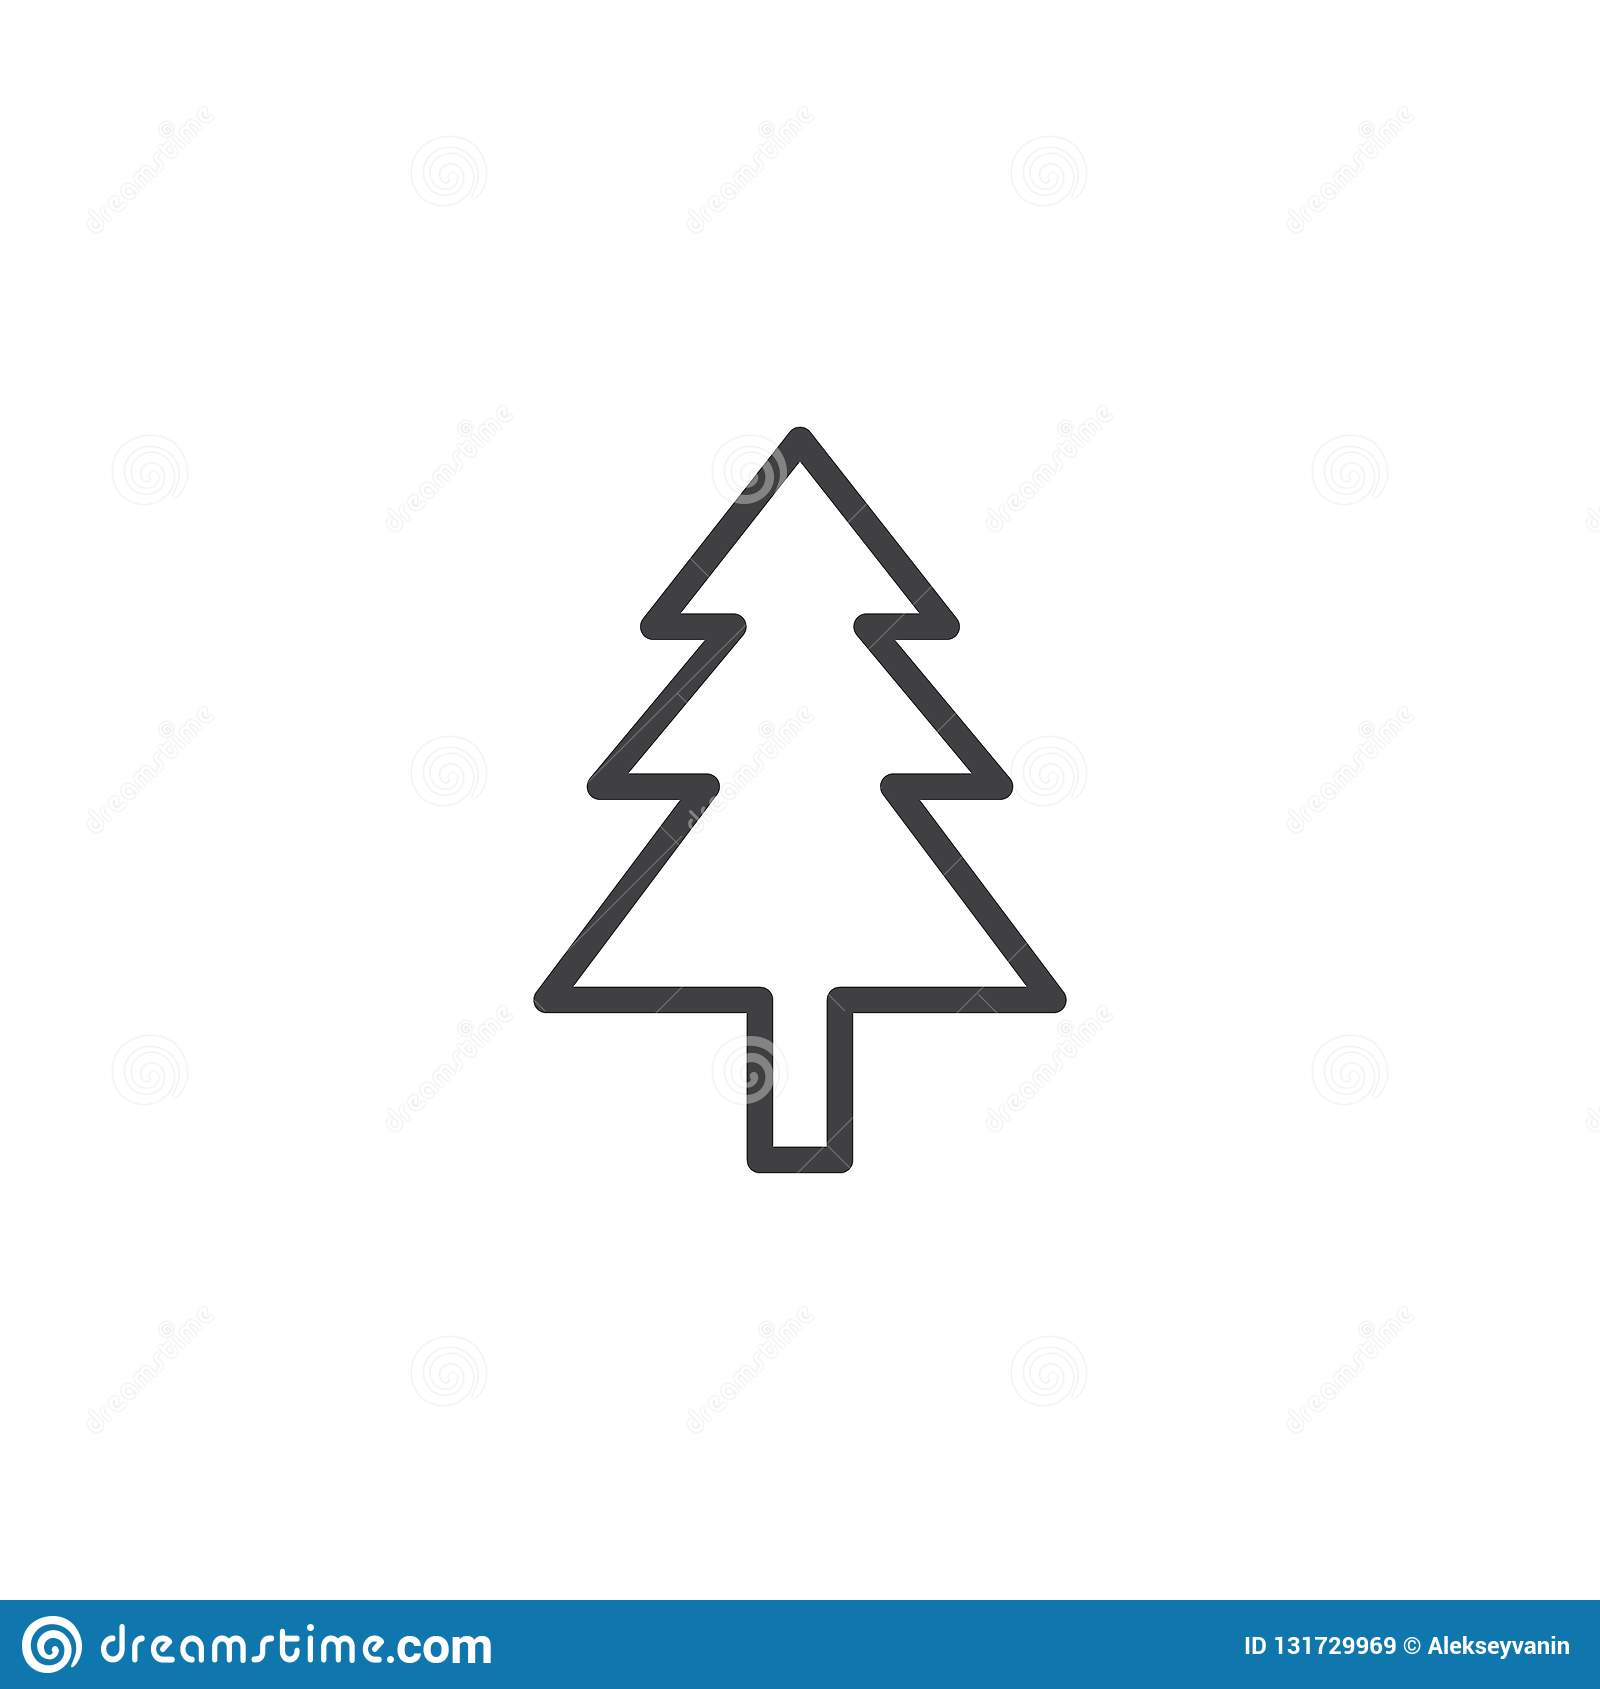 Christmas Tree Outline Icon Stock Vector Illustration Of Pine Outline 131729969